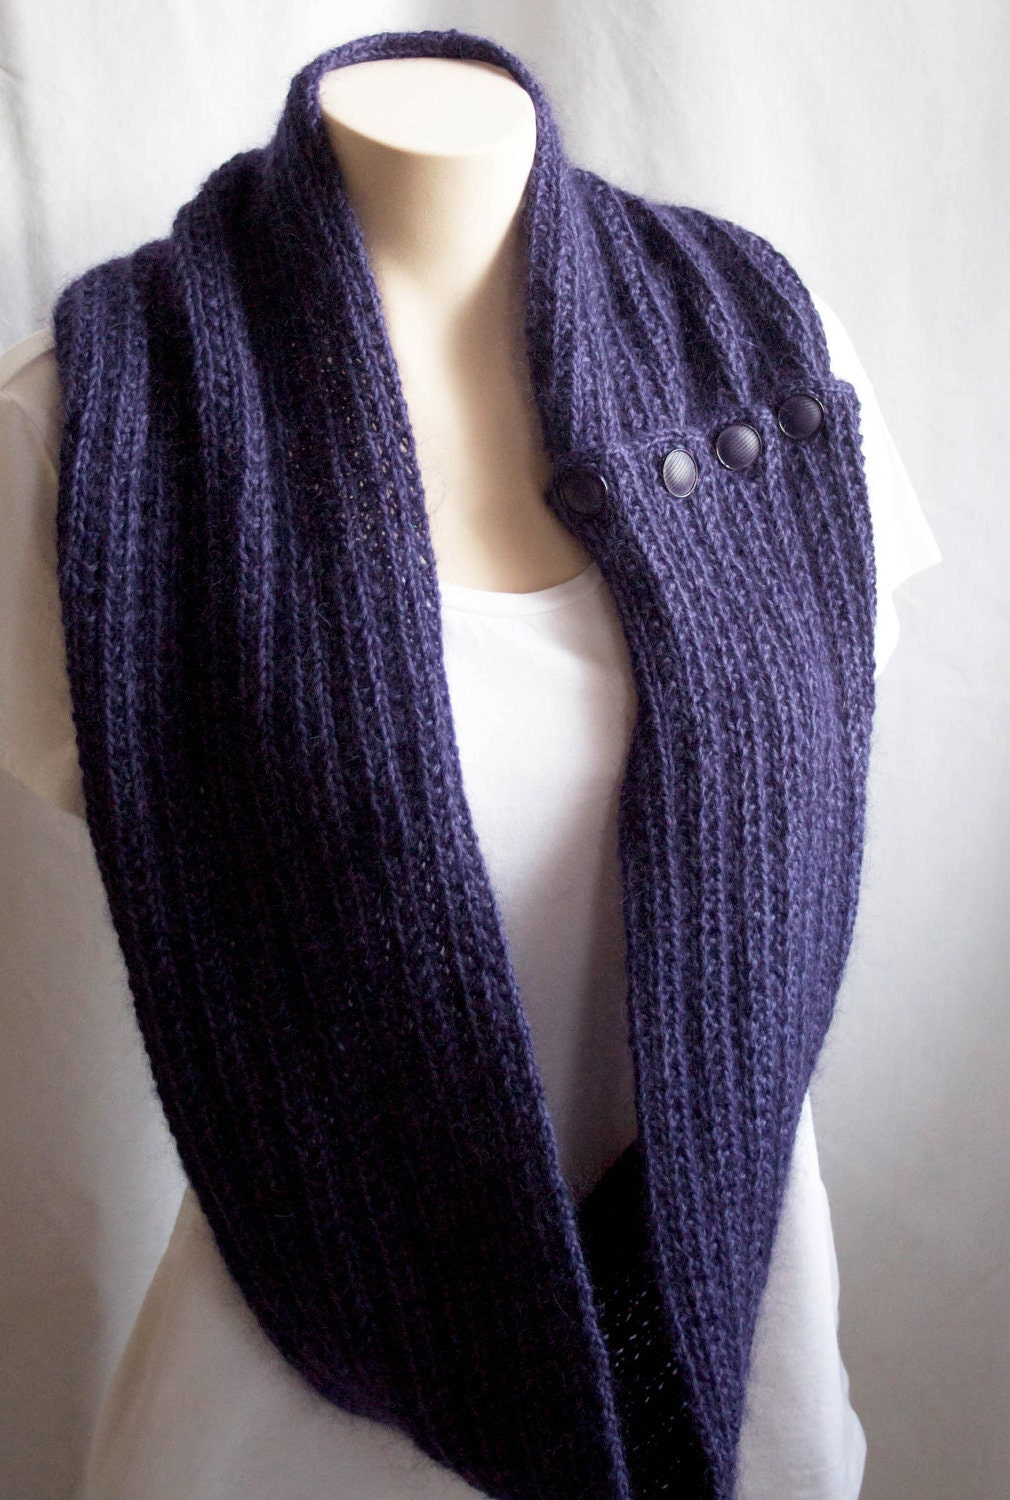 Alpaca Cowl Knitting Pattern : Knitting Pattern Scarf, Infinity Cowl, Purple, Violet ...